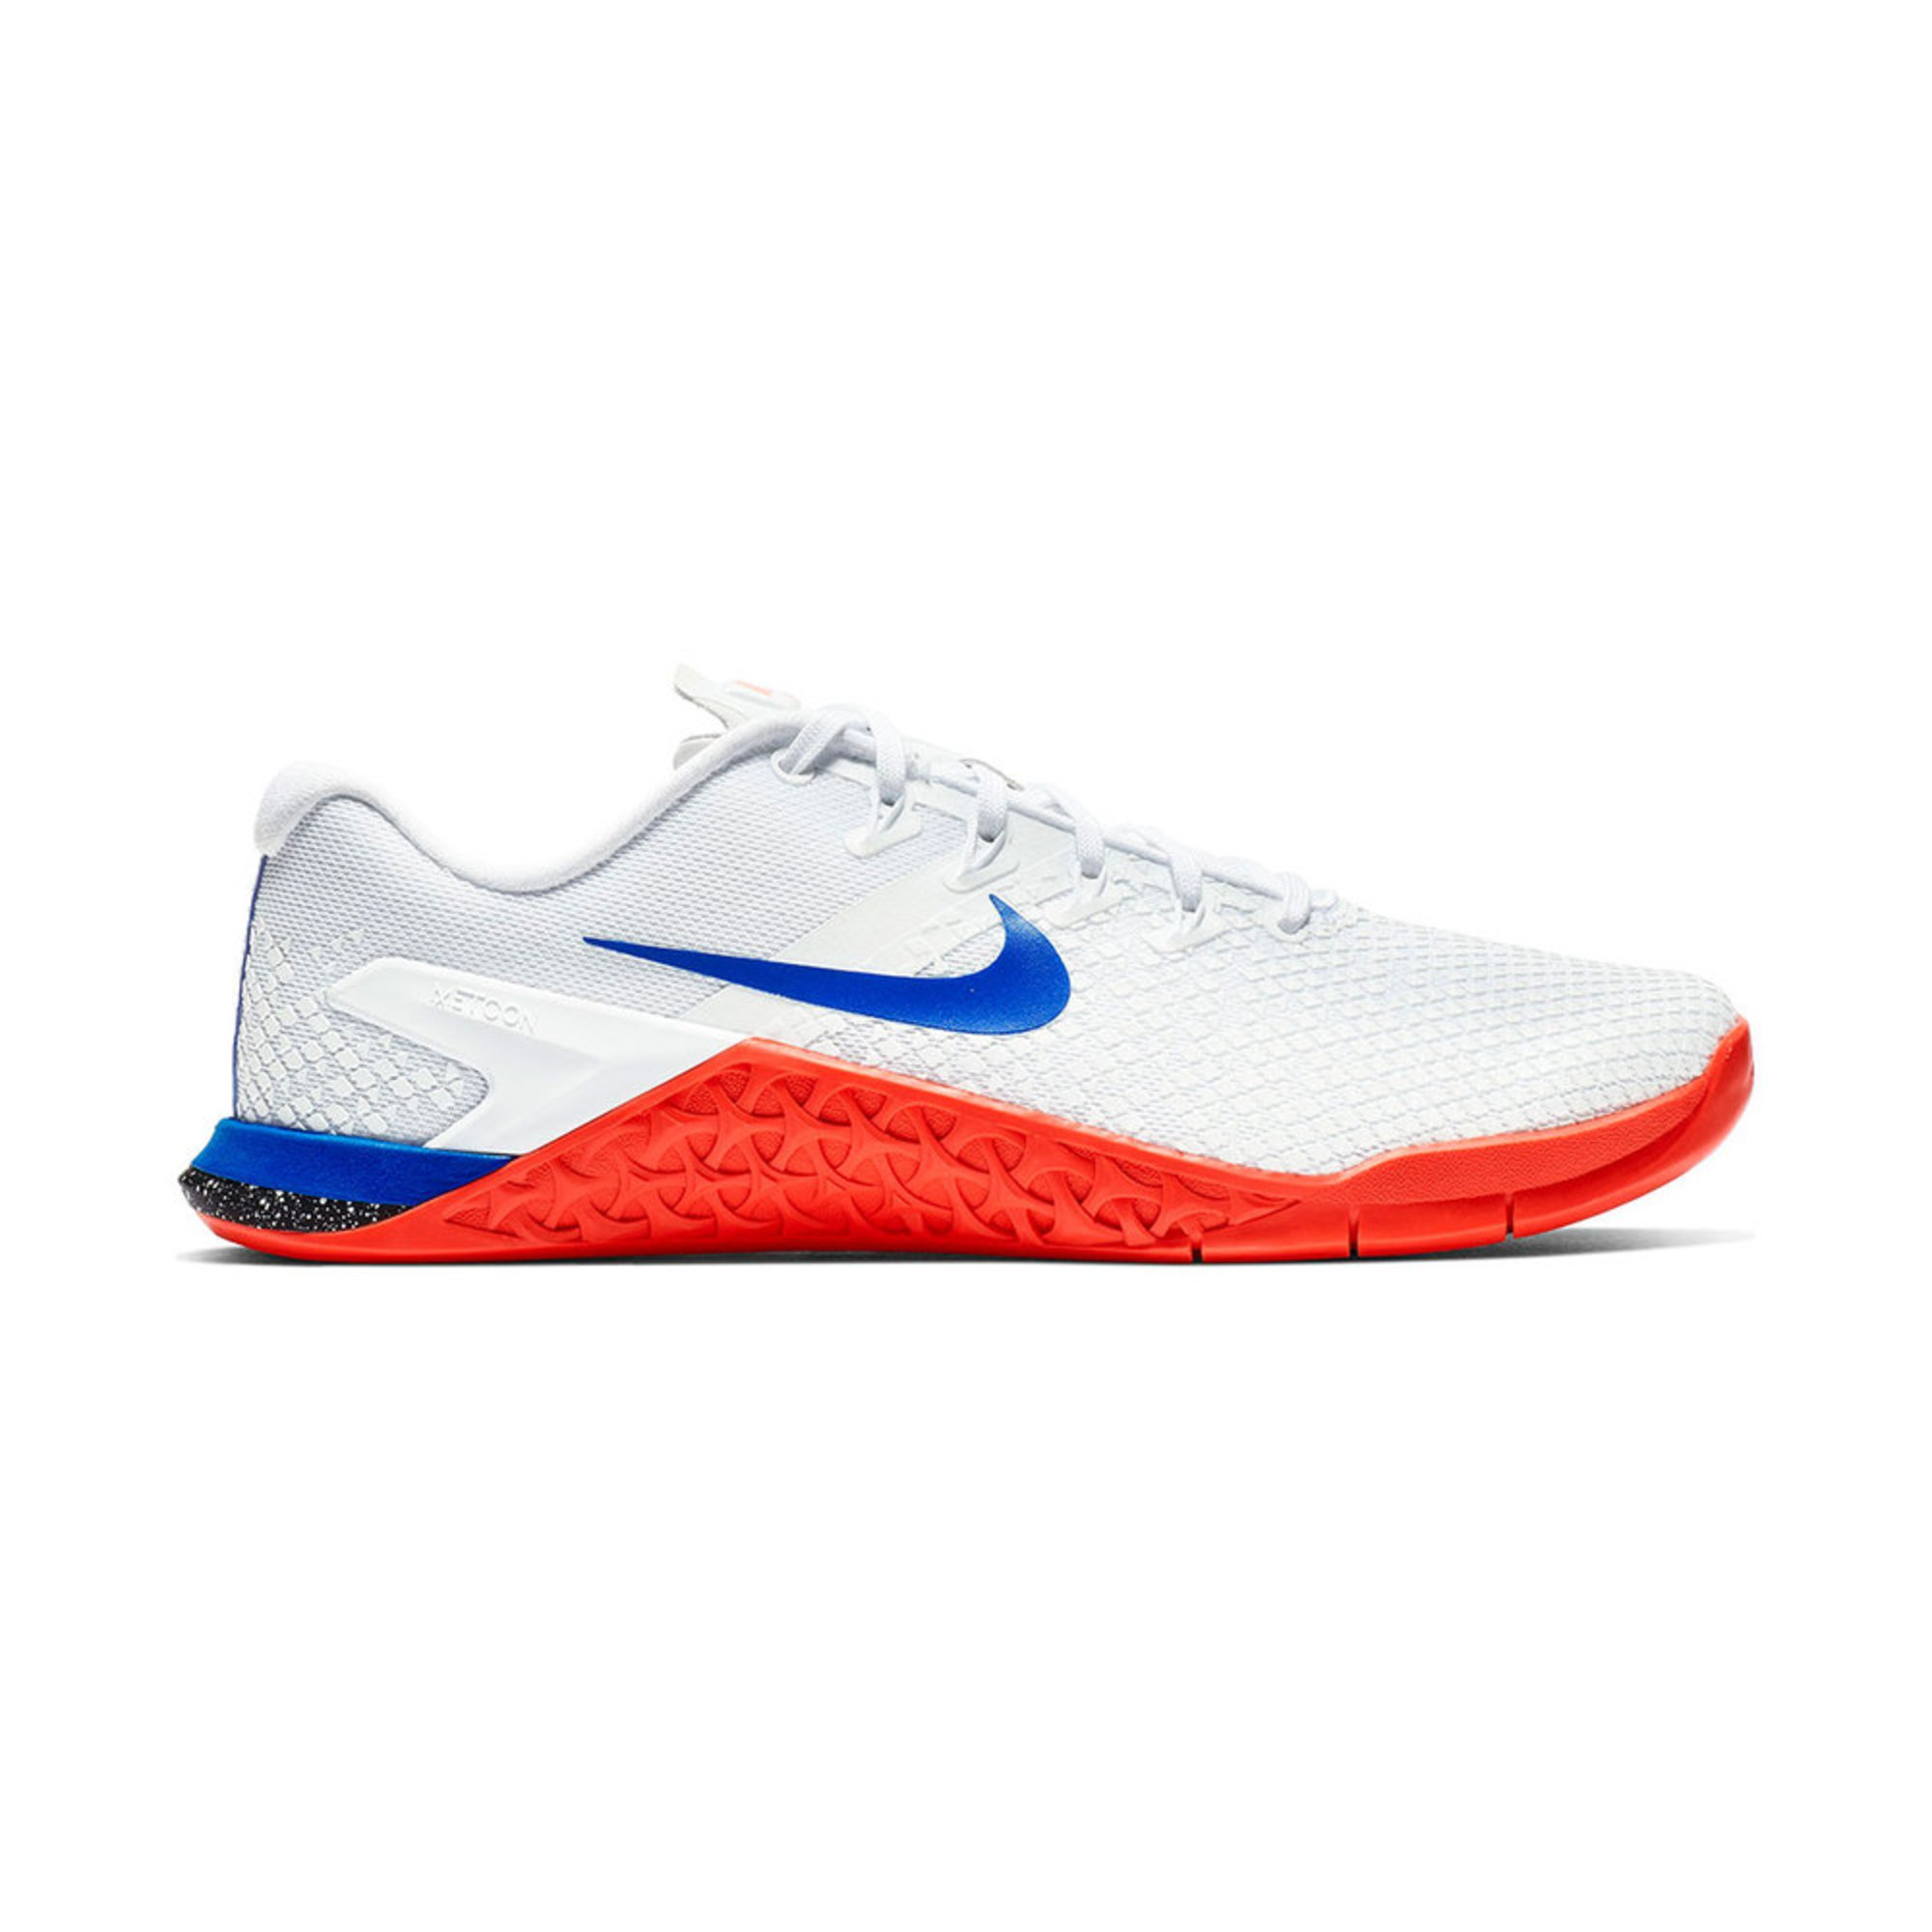 detailed look cb061 e3c46 Nike Womens Metcon 4 Xd Training Shoe  Womens Training Shoes